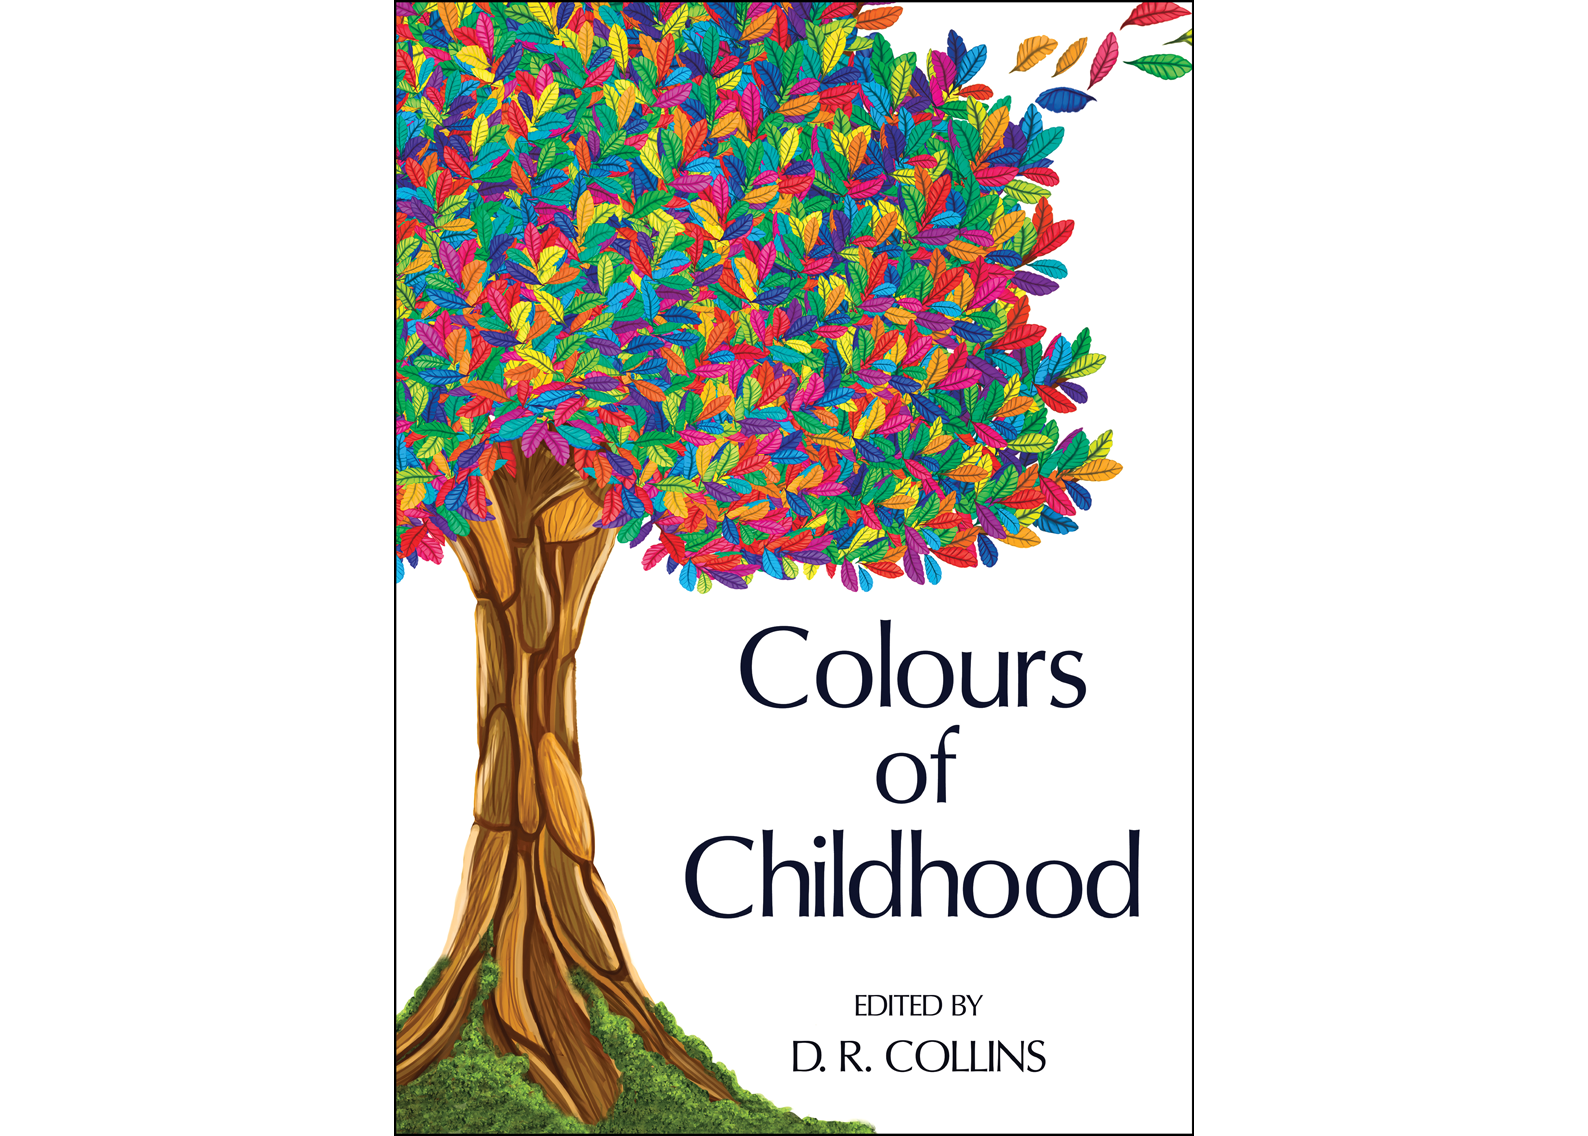 Colours of Childhood (Hardback)